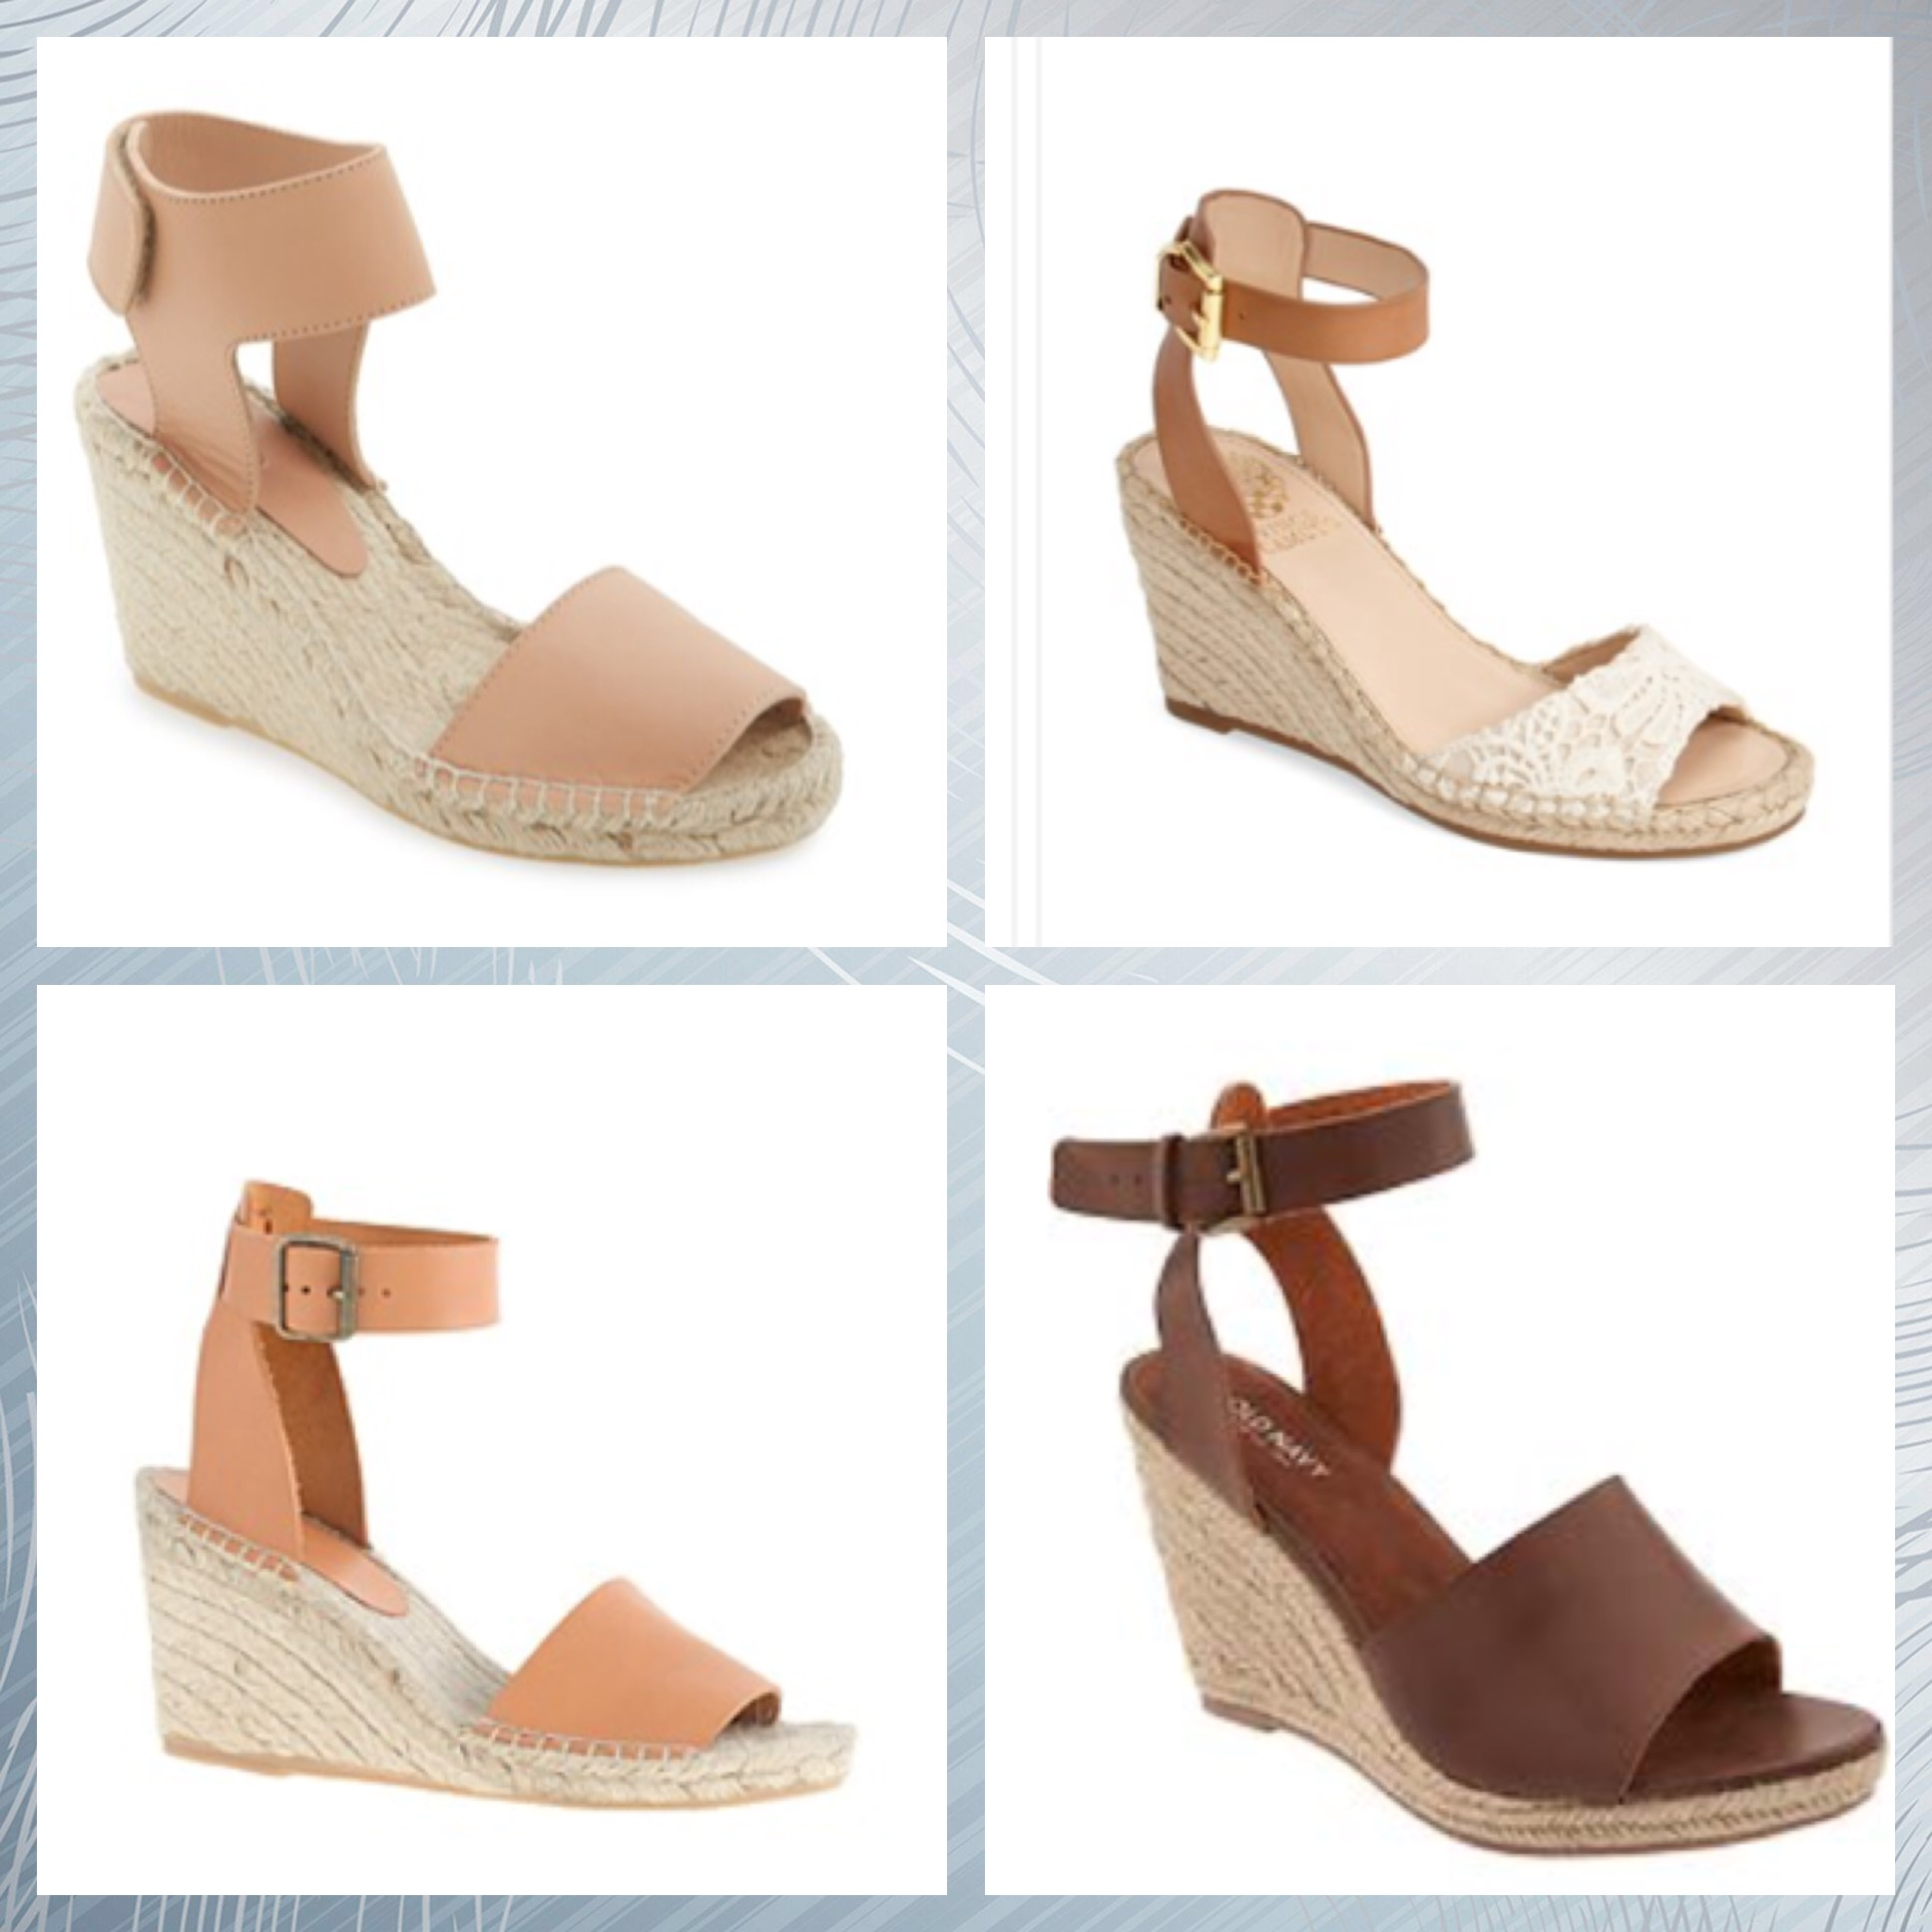 17361779db7 Must Have Shoe for Summer - The Wedge Sandal - Ask Suzanne Bell